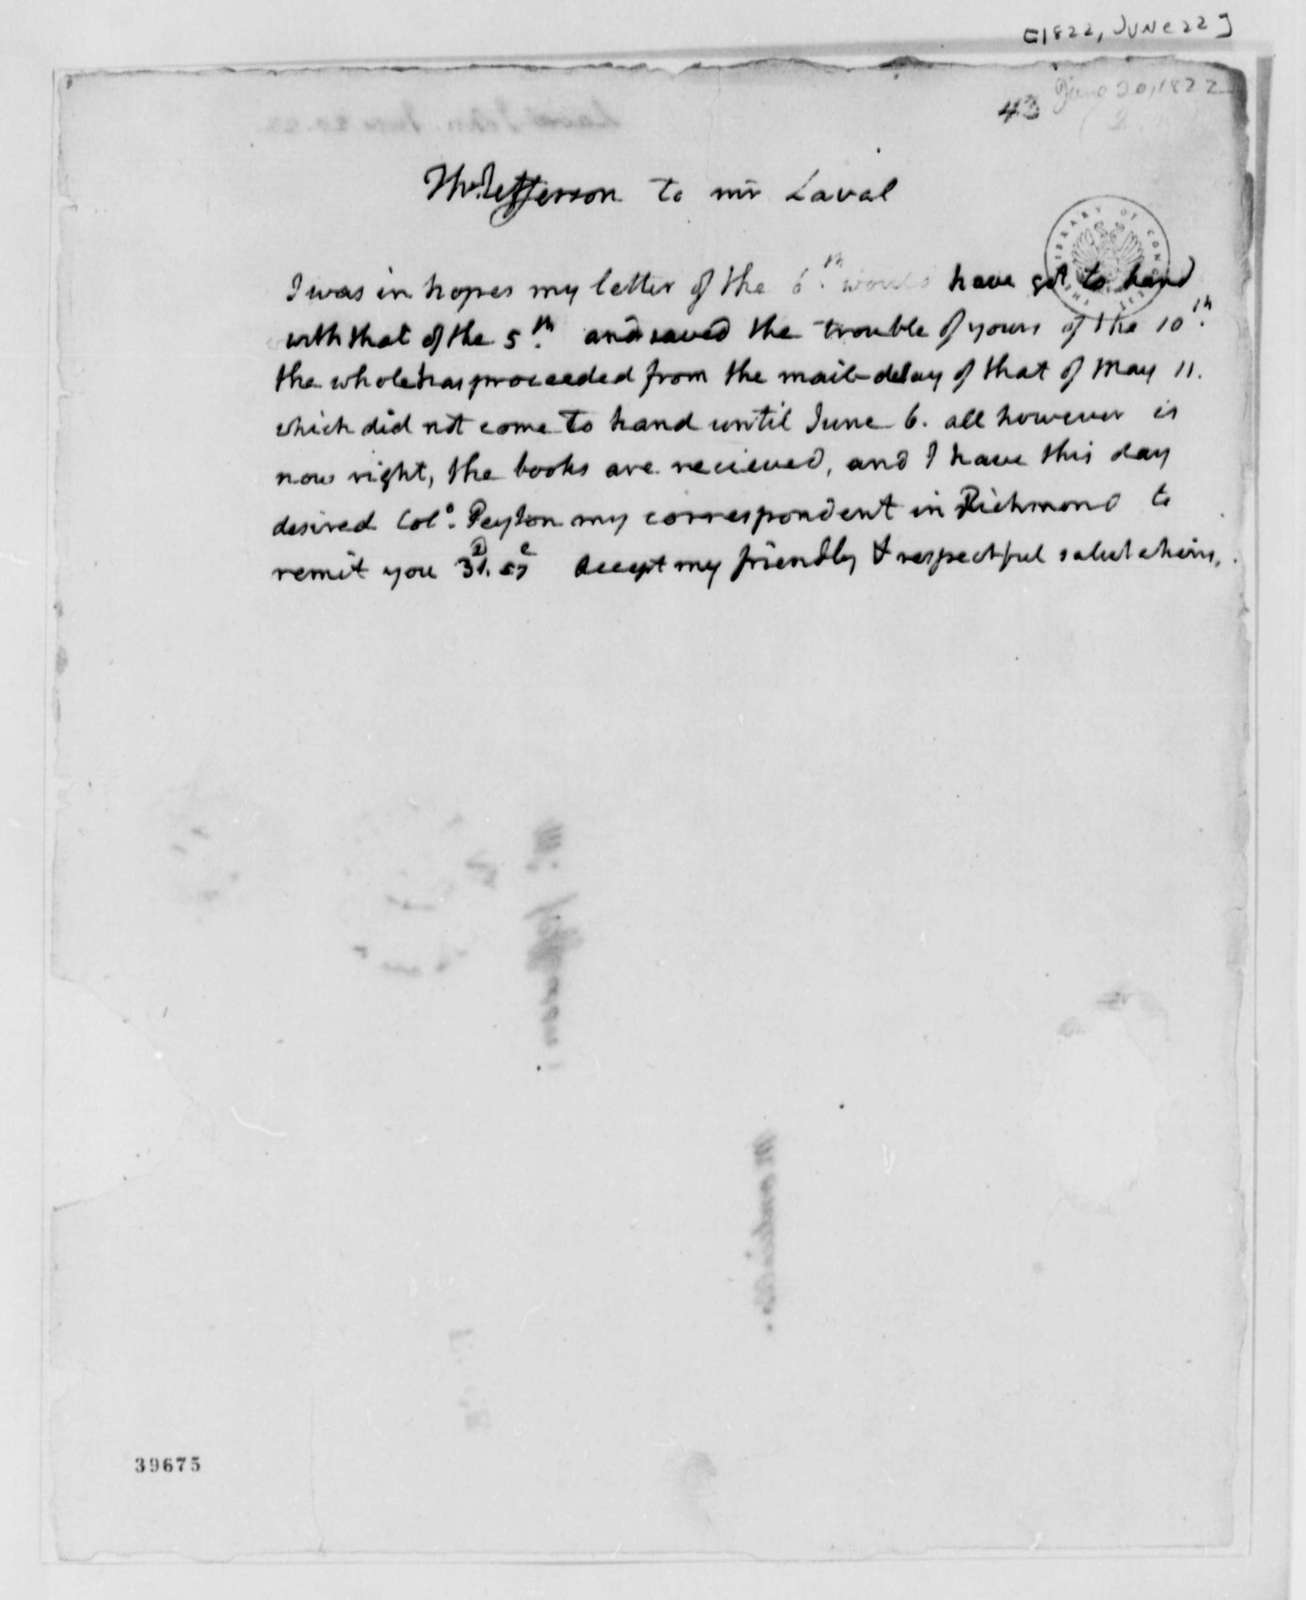 Thomas Jefferson to John Laval, June 22, 1822